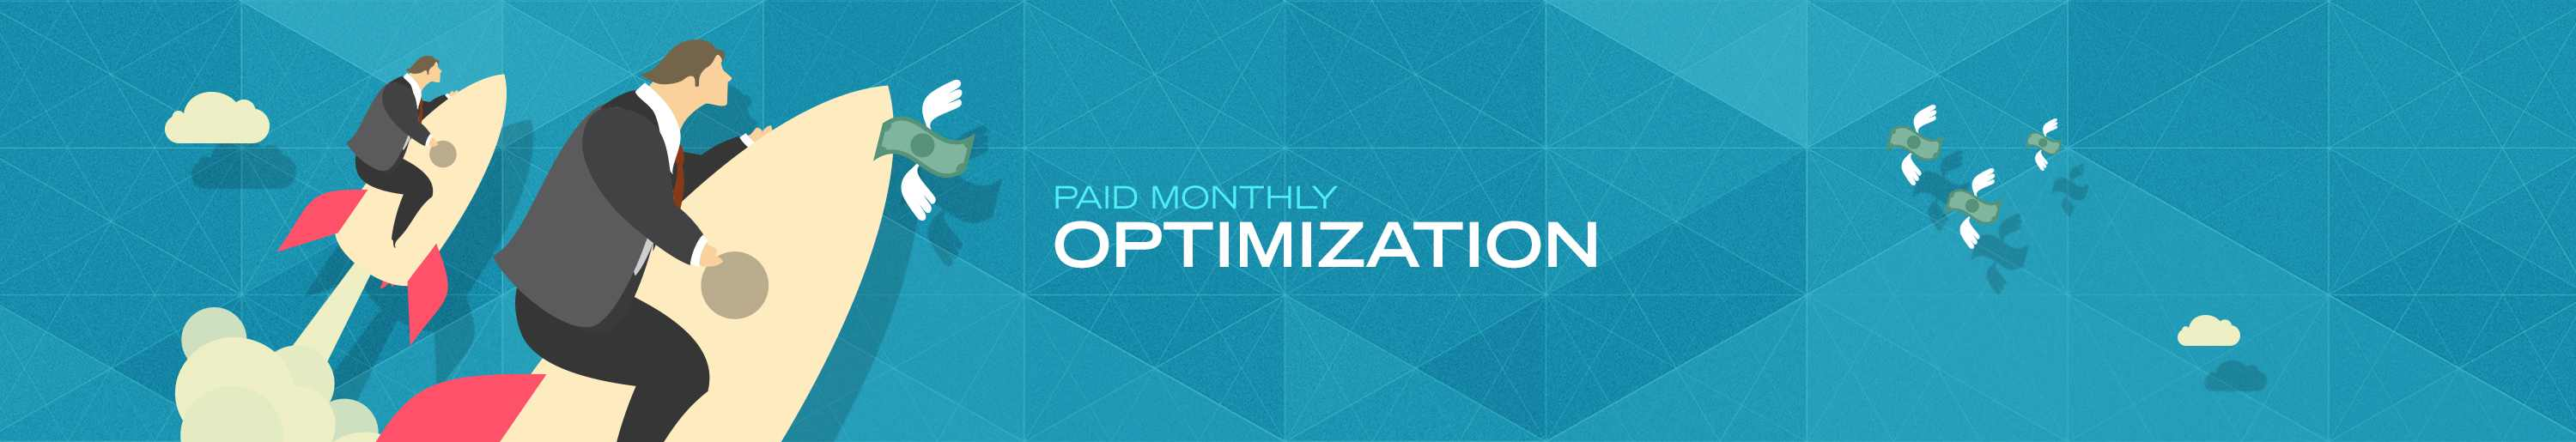 monthly_optimization_paid_header2